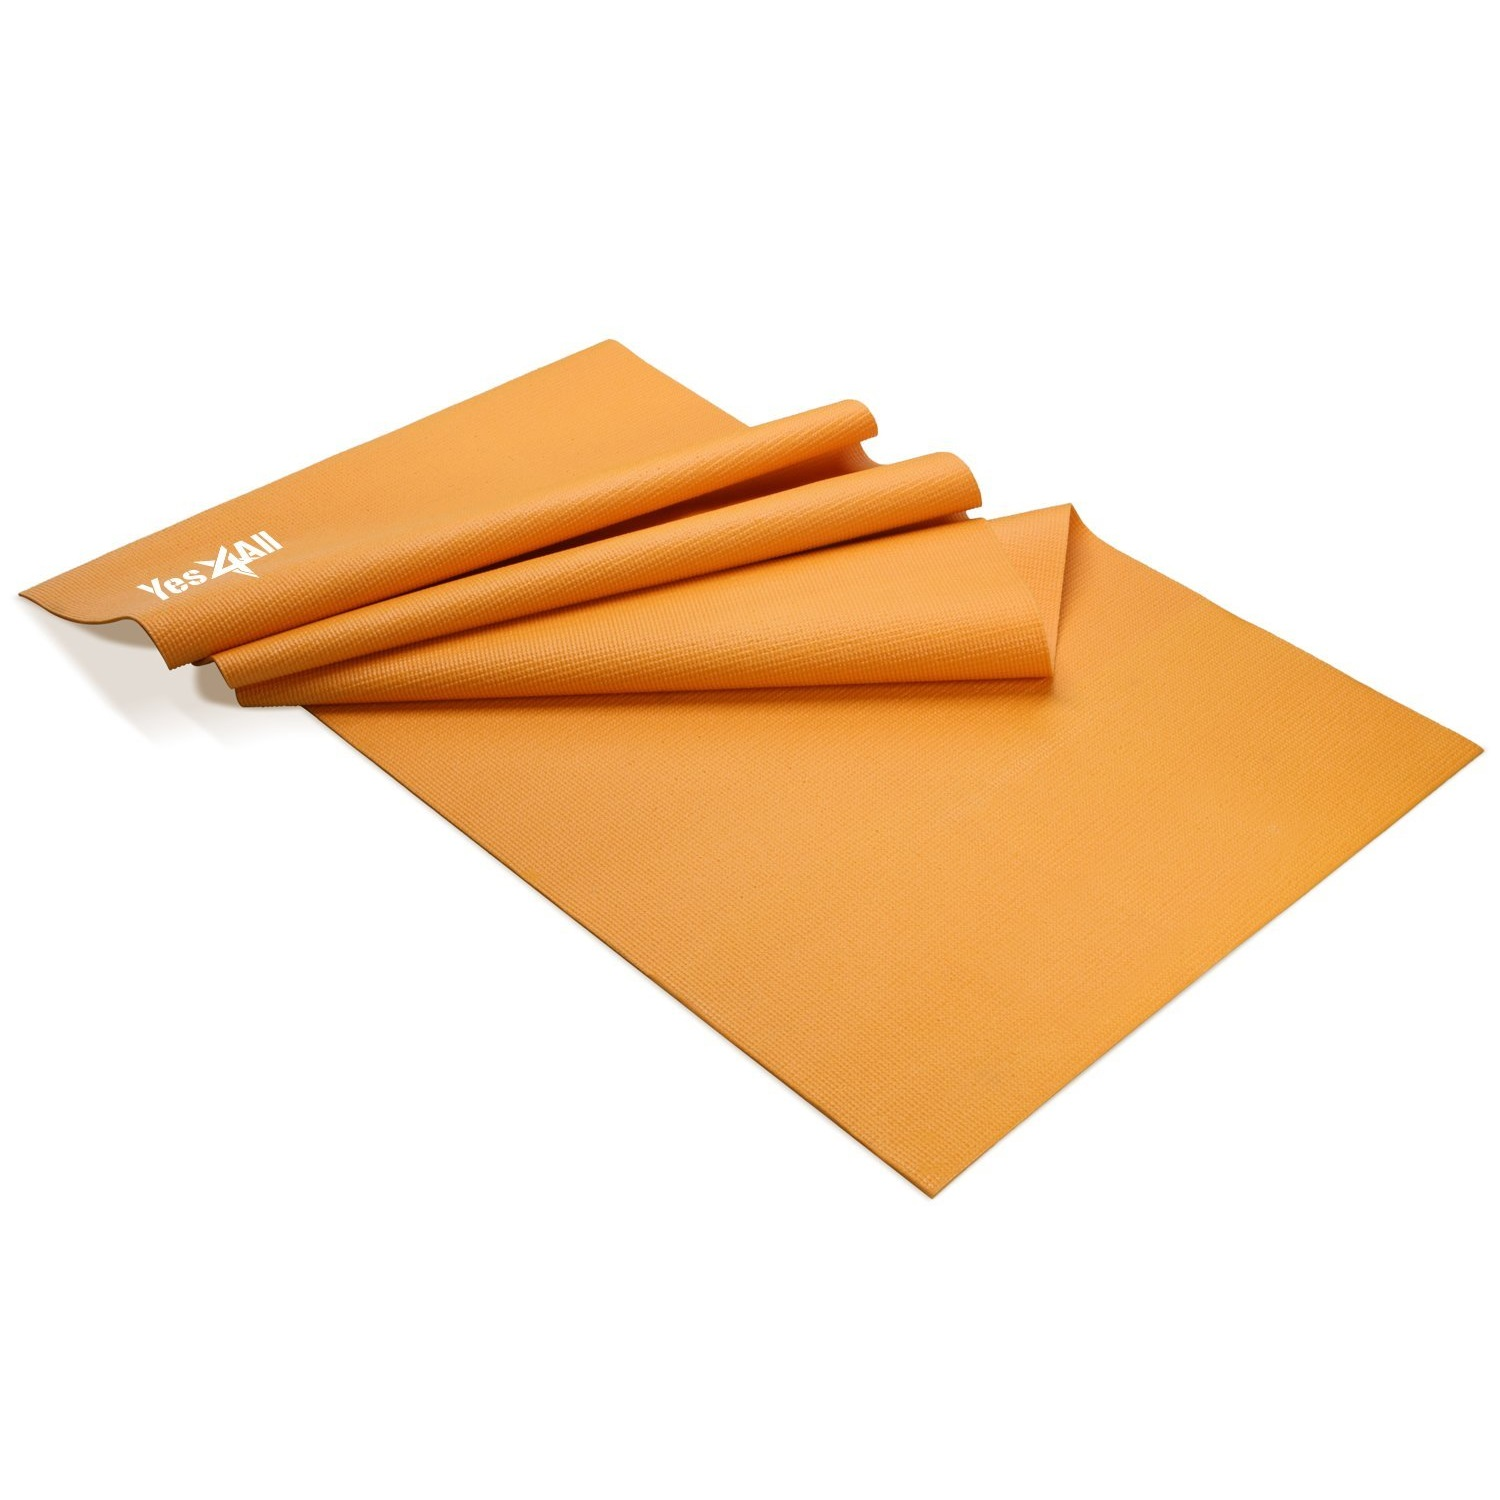 yes4all pvc premium mat exercice de yoga d'orange